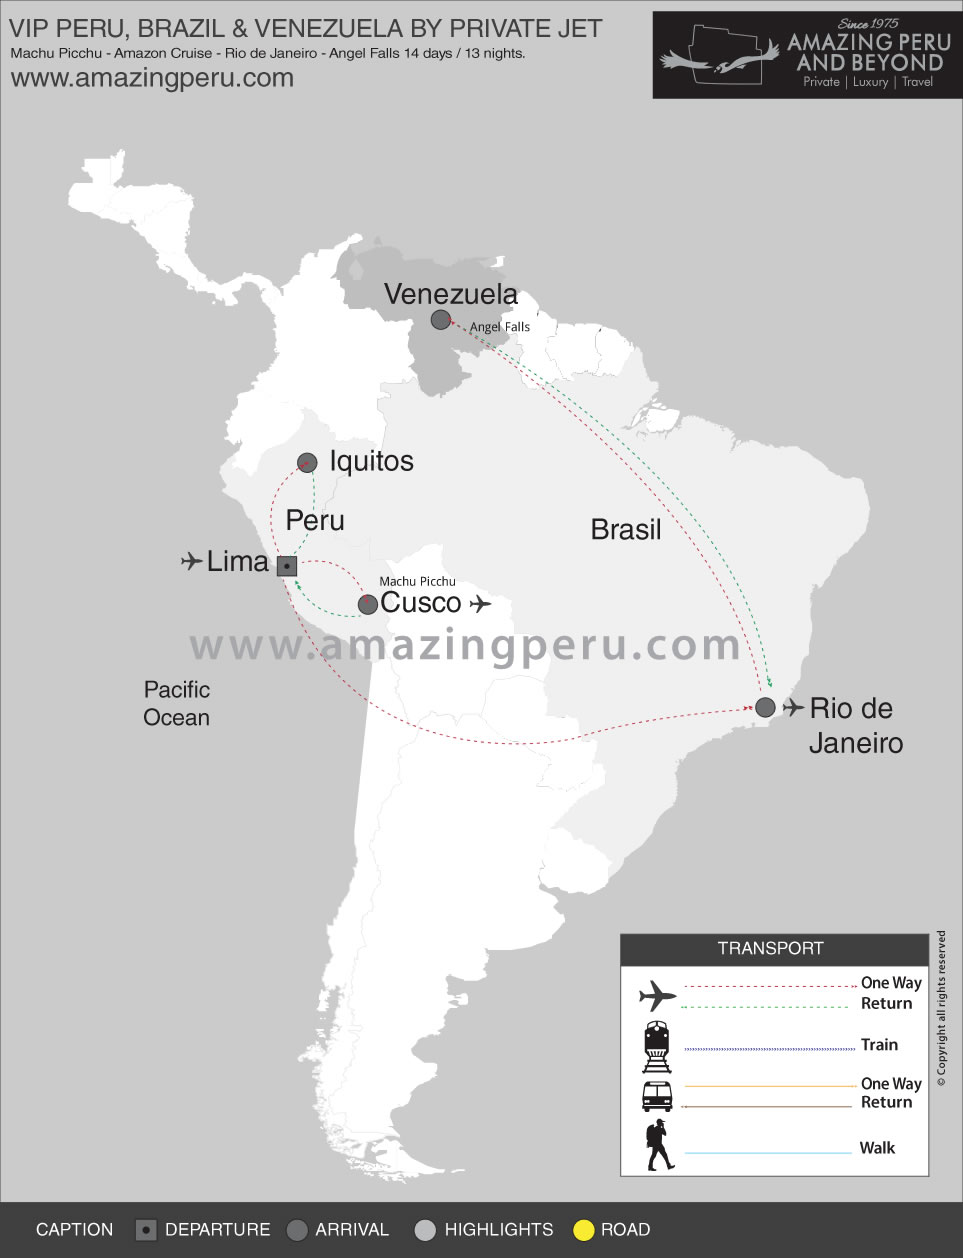 VIP Peru, Brazil & Venezuela by Private Jet - 14 days / 13 nights.